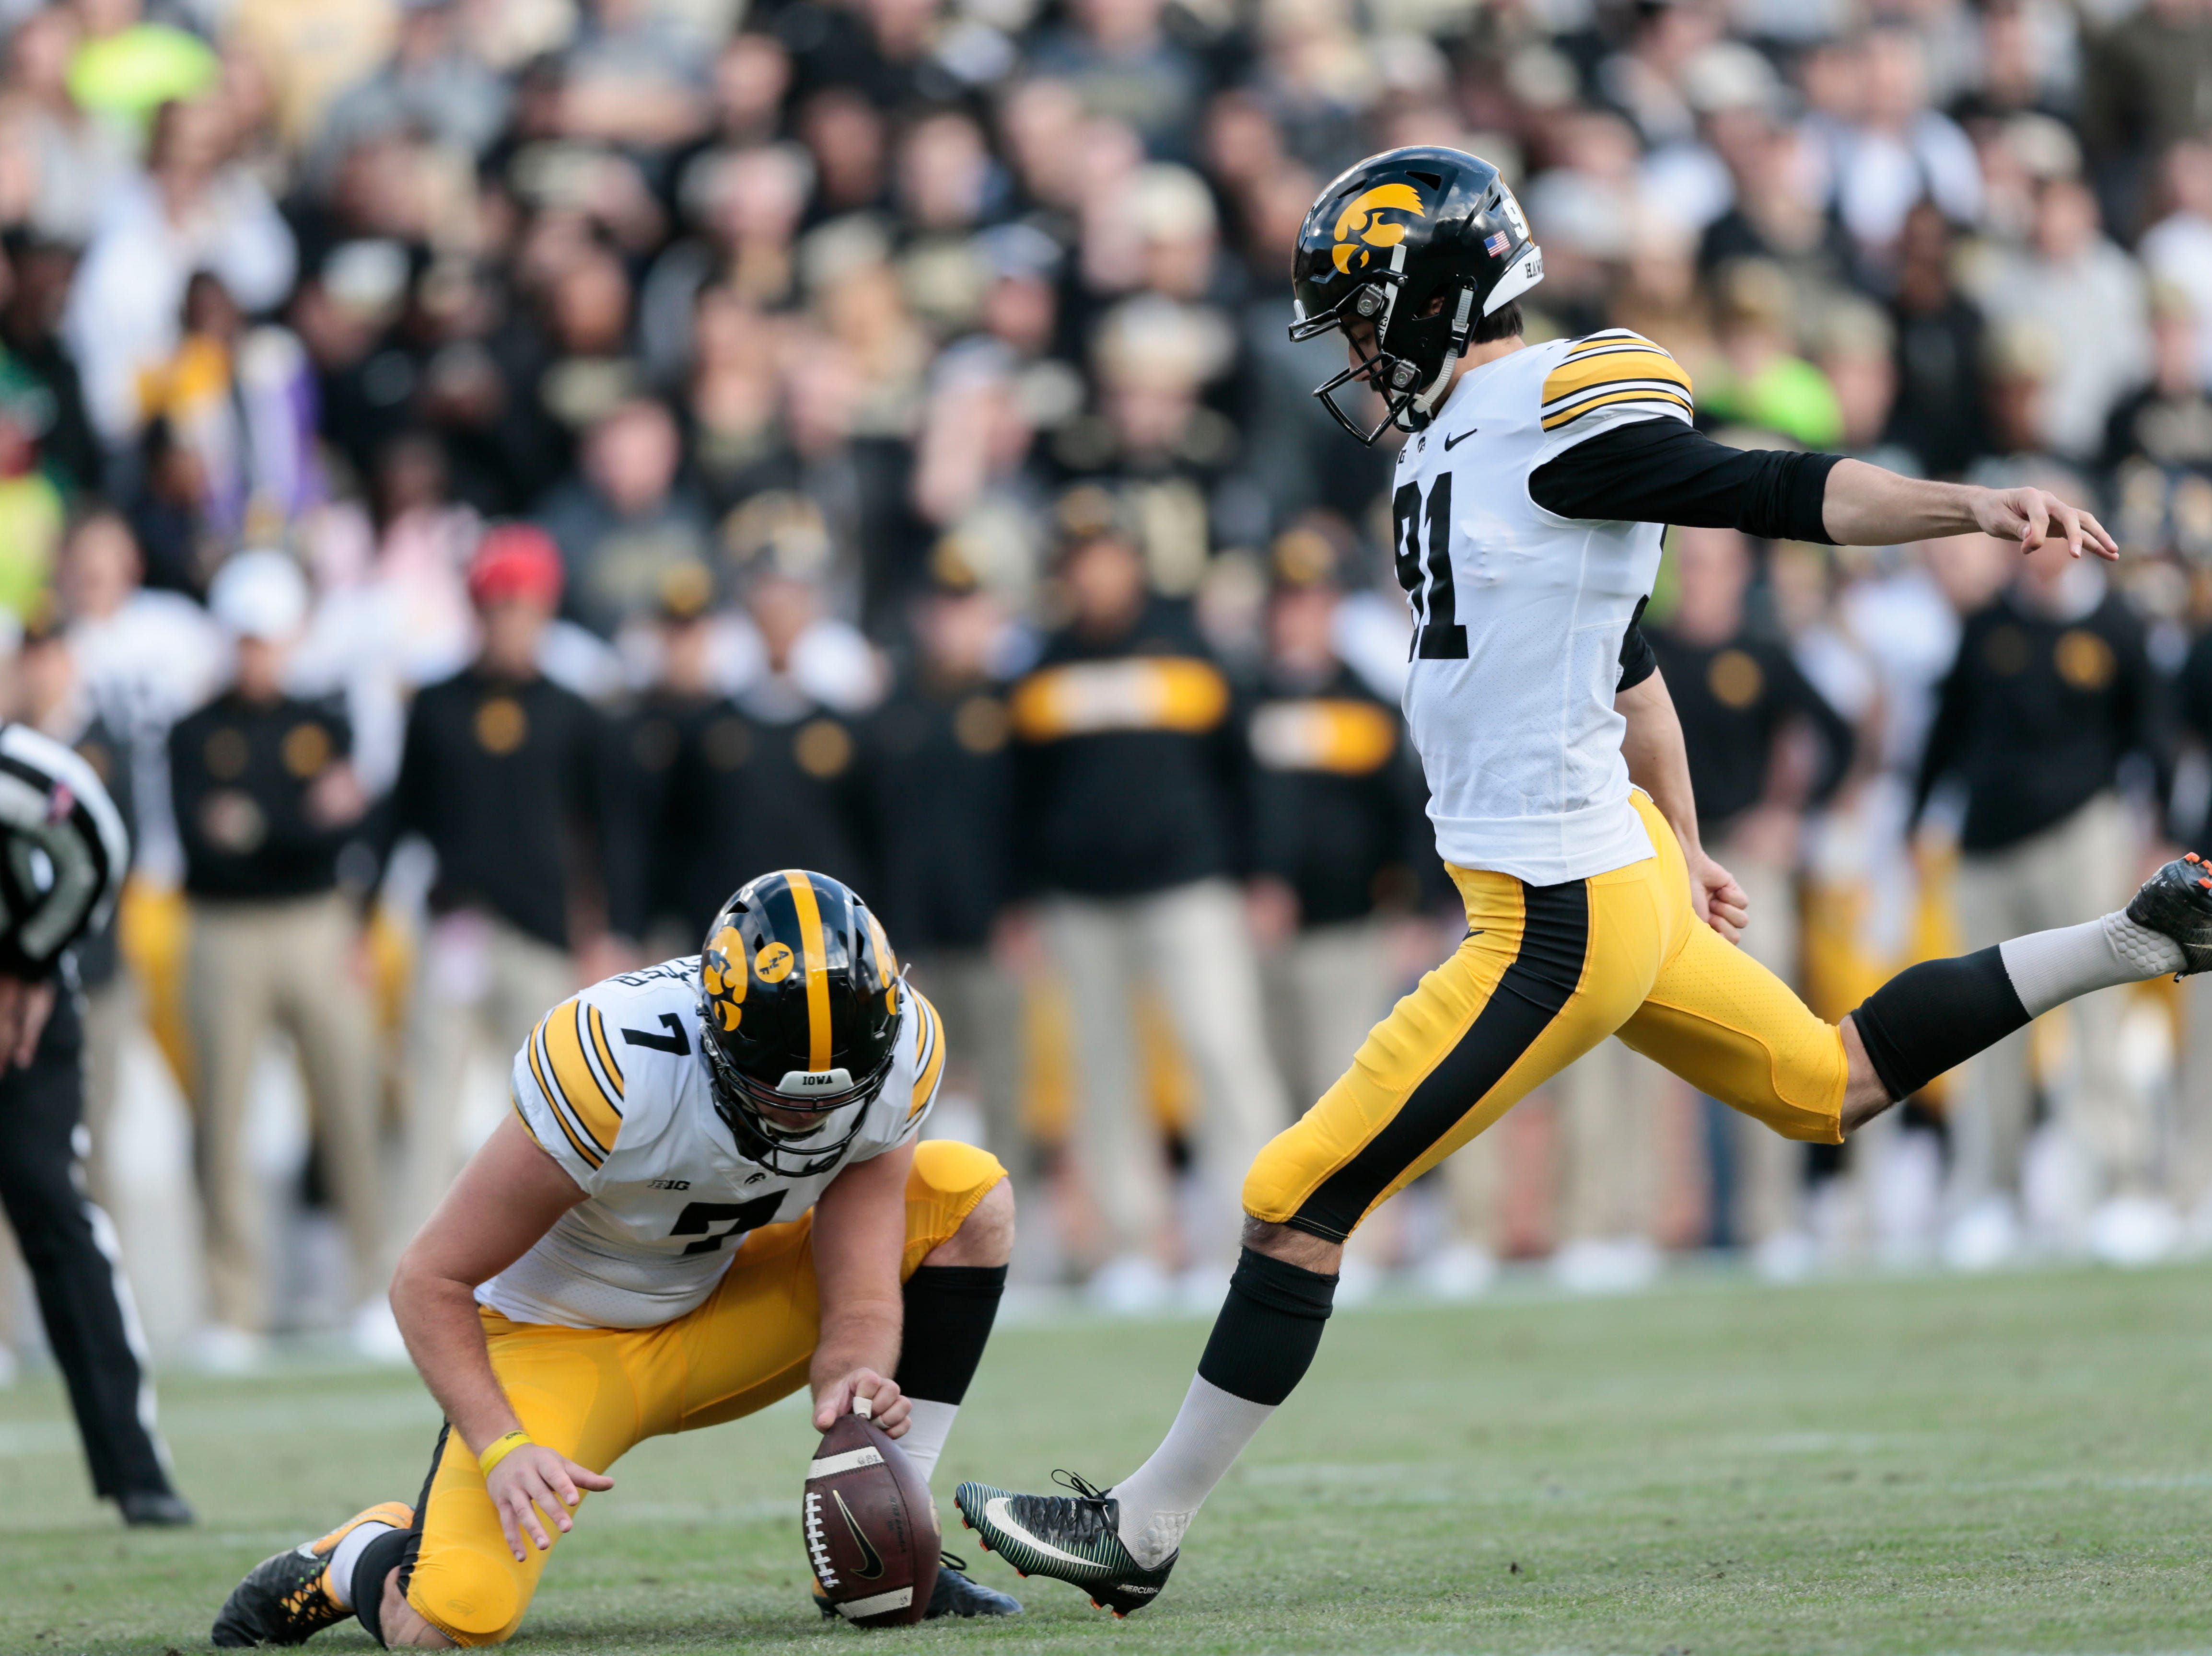 Iowa place kicker Miguel Recinos (91) boots a field goal from the hold of punter Colten Rastetter (7) while playing against Purdue in the first half of an NCAA college football game in West Lafayette, Ind., Saturday, Nov. 3, 2018.